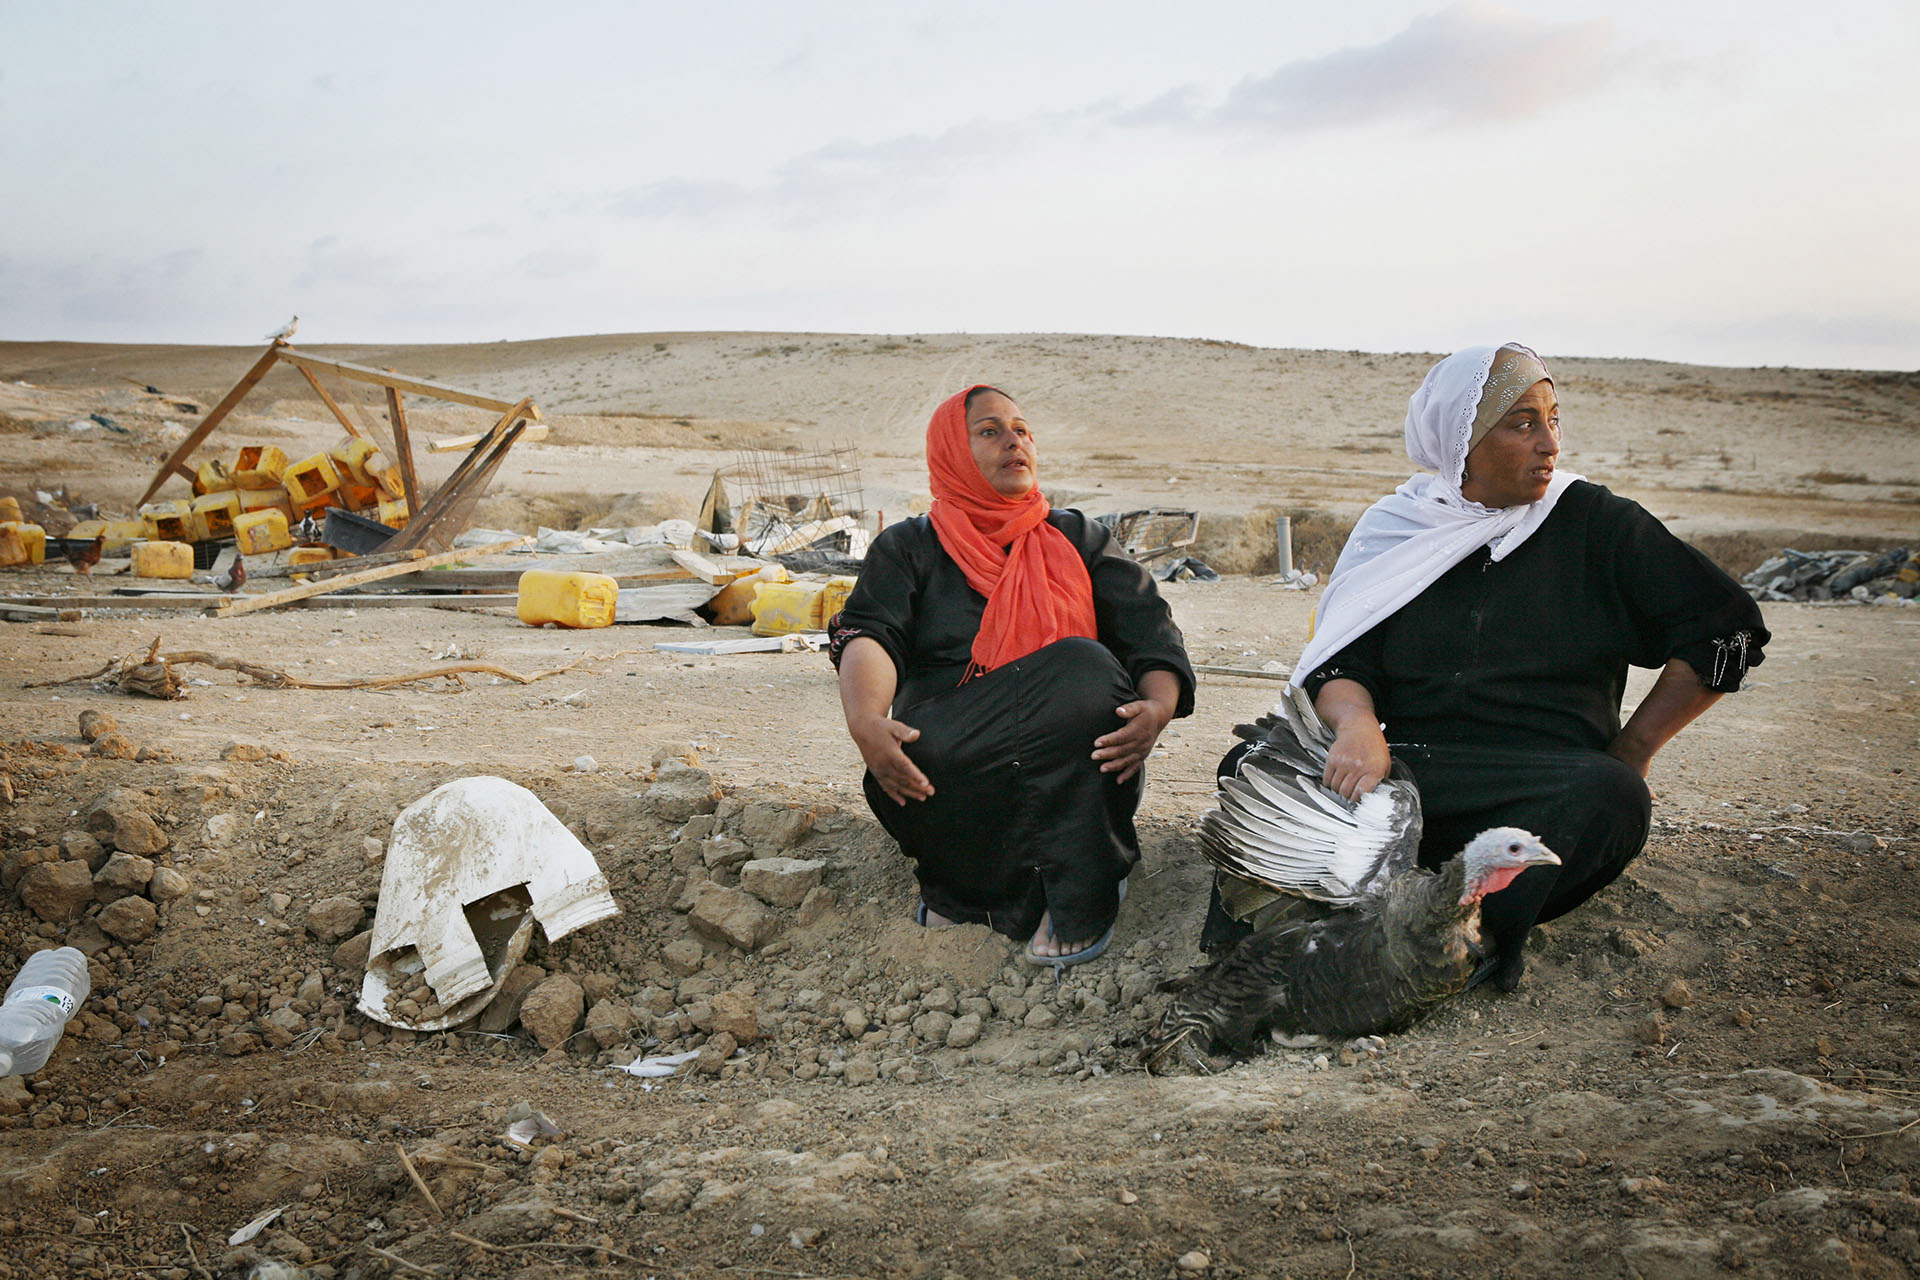 Women sit in the village after the umpteenth demolition. Al Araqib, September 2010